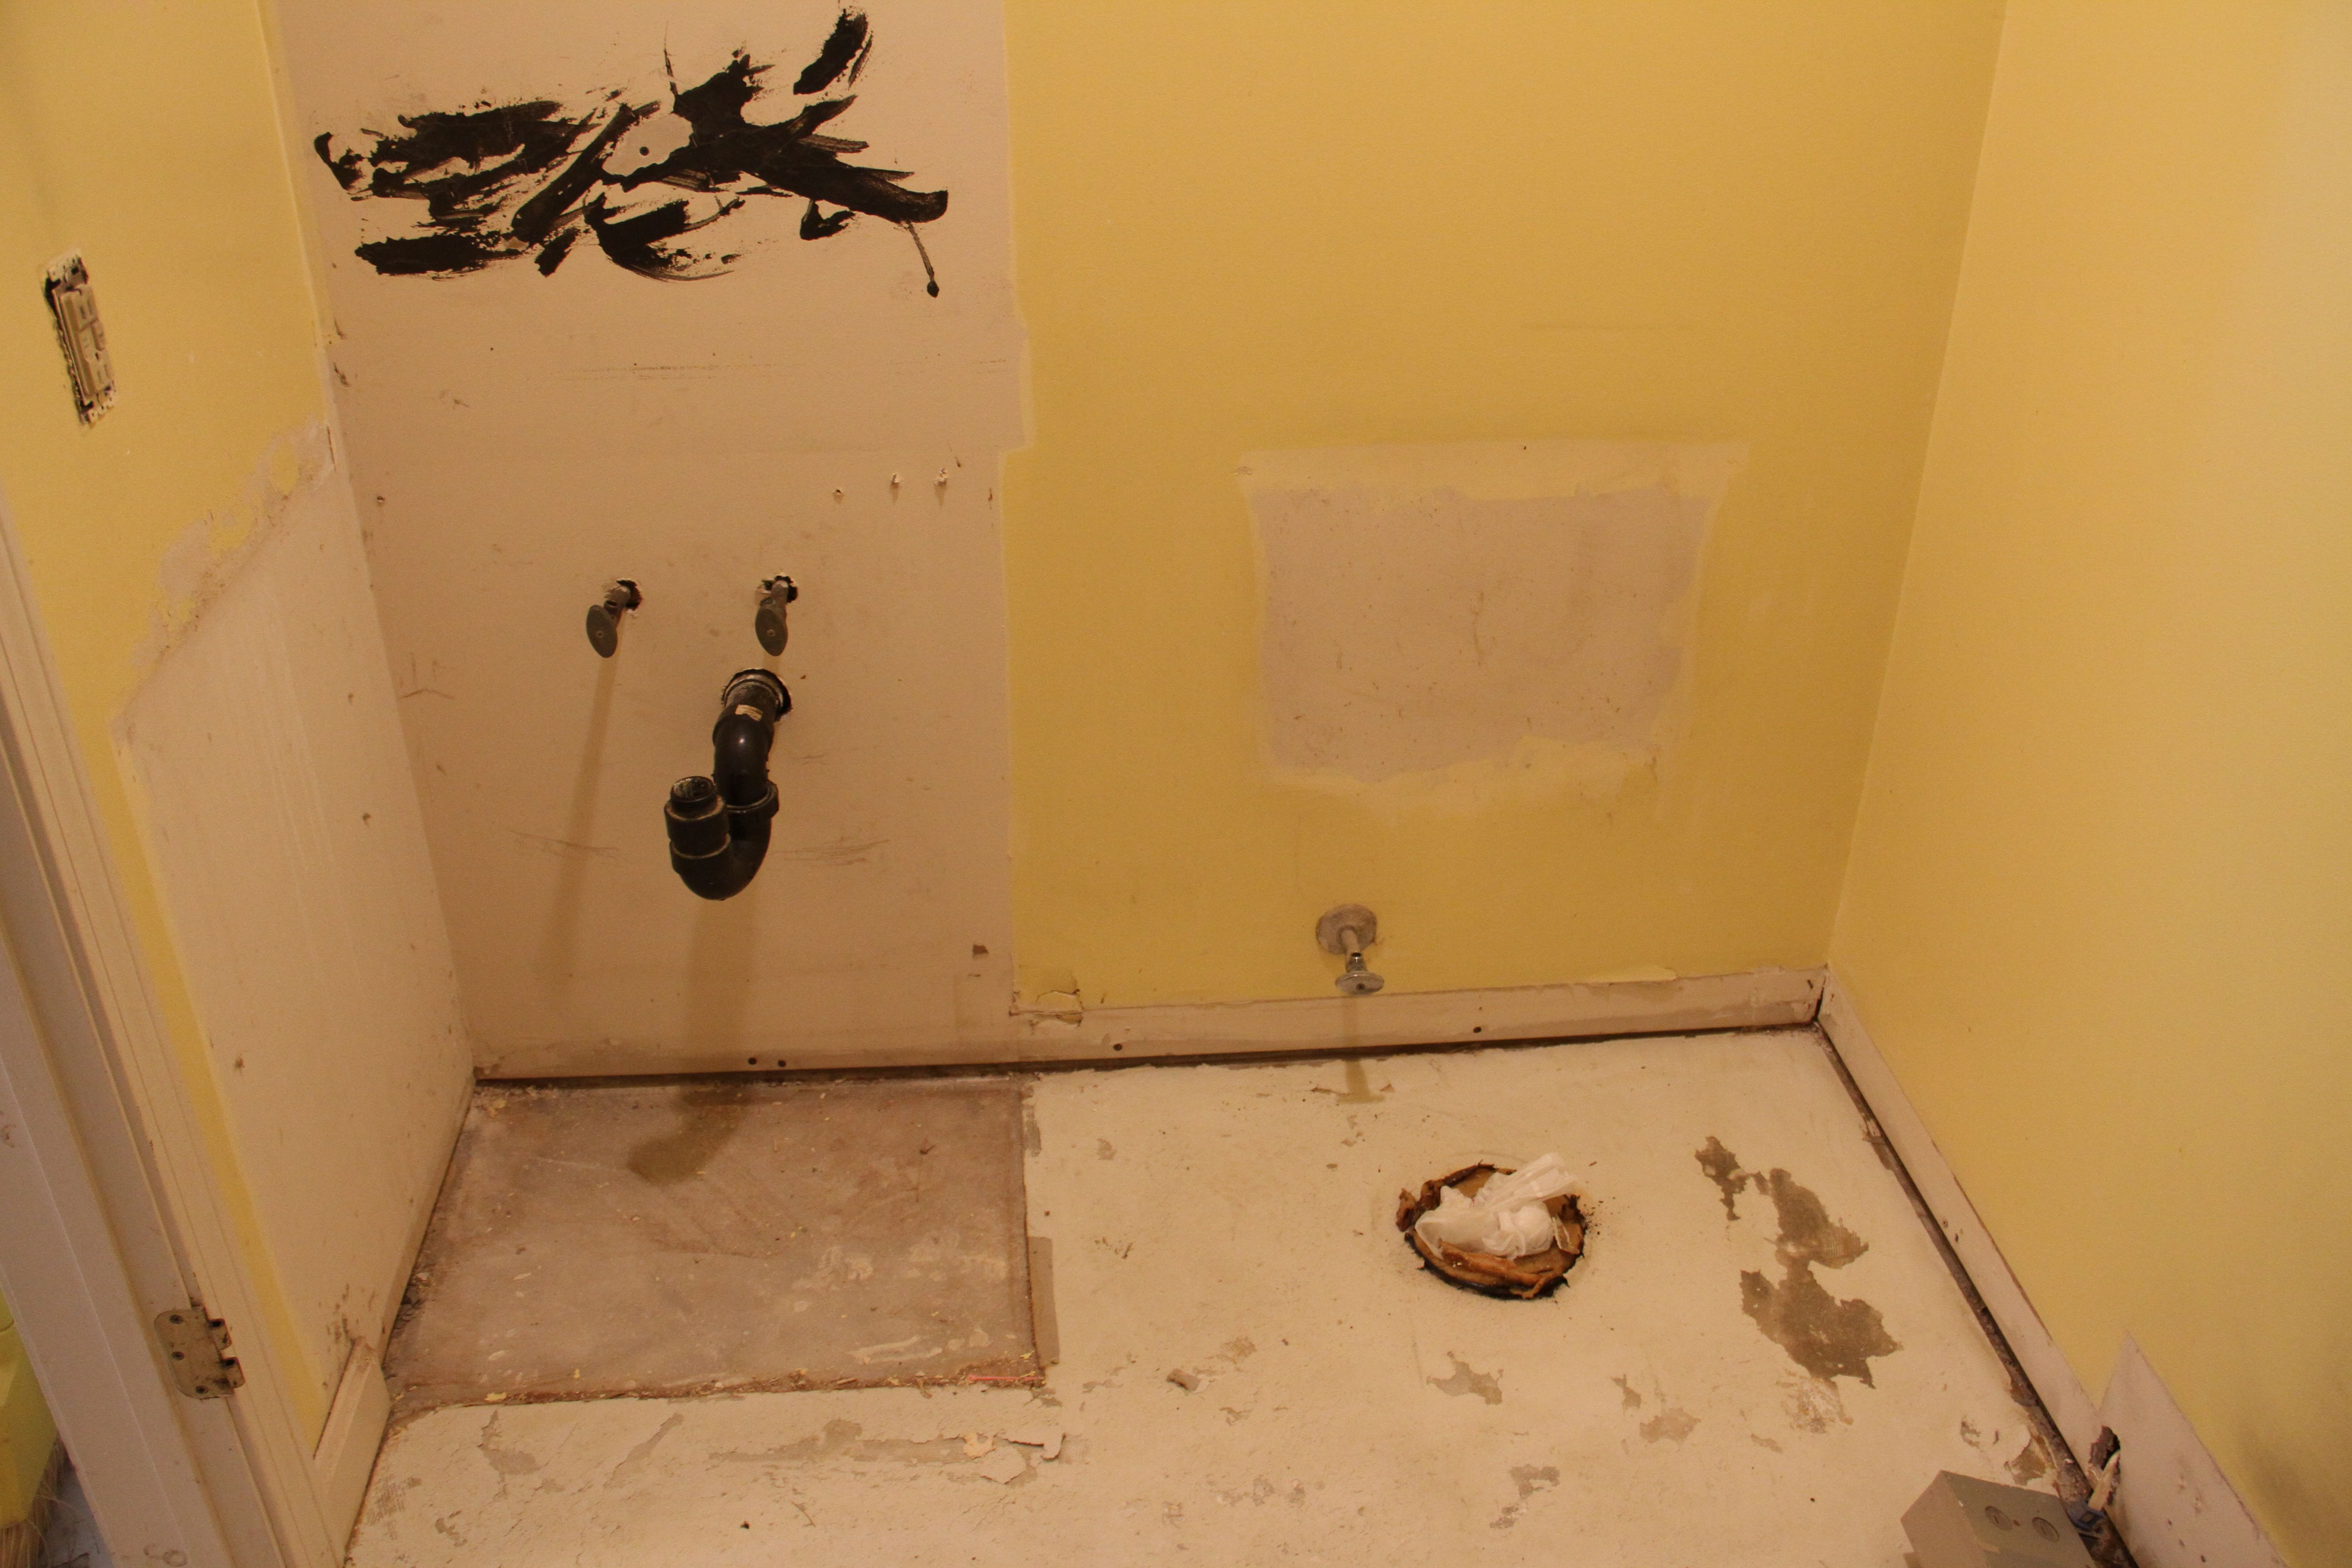 Jeff removed the vanity and toilet. And flooring. And mirror. And baseboards.